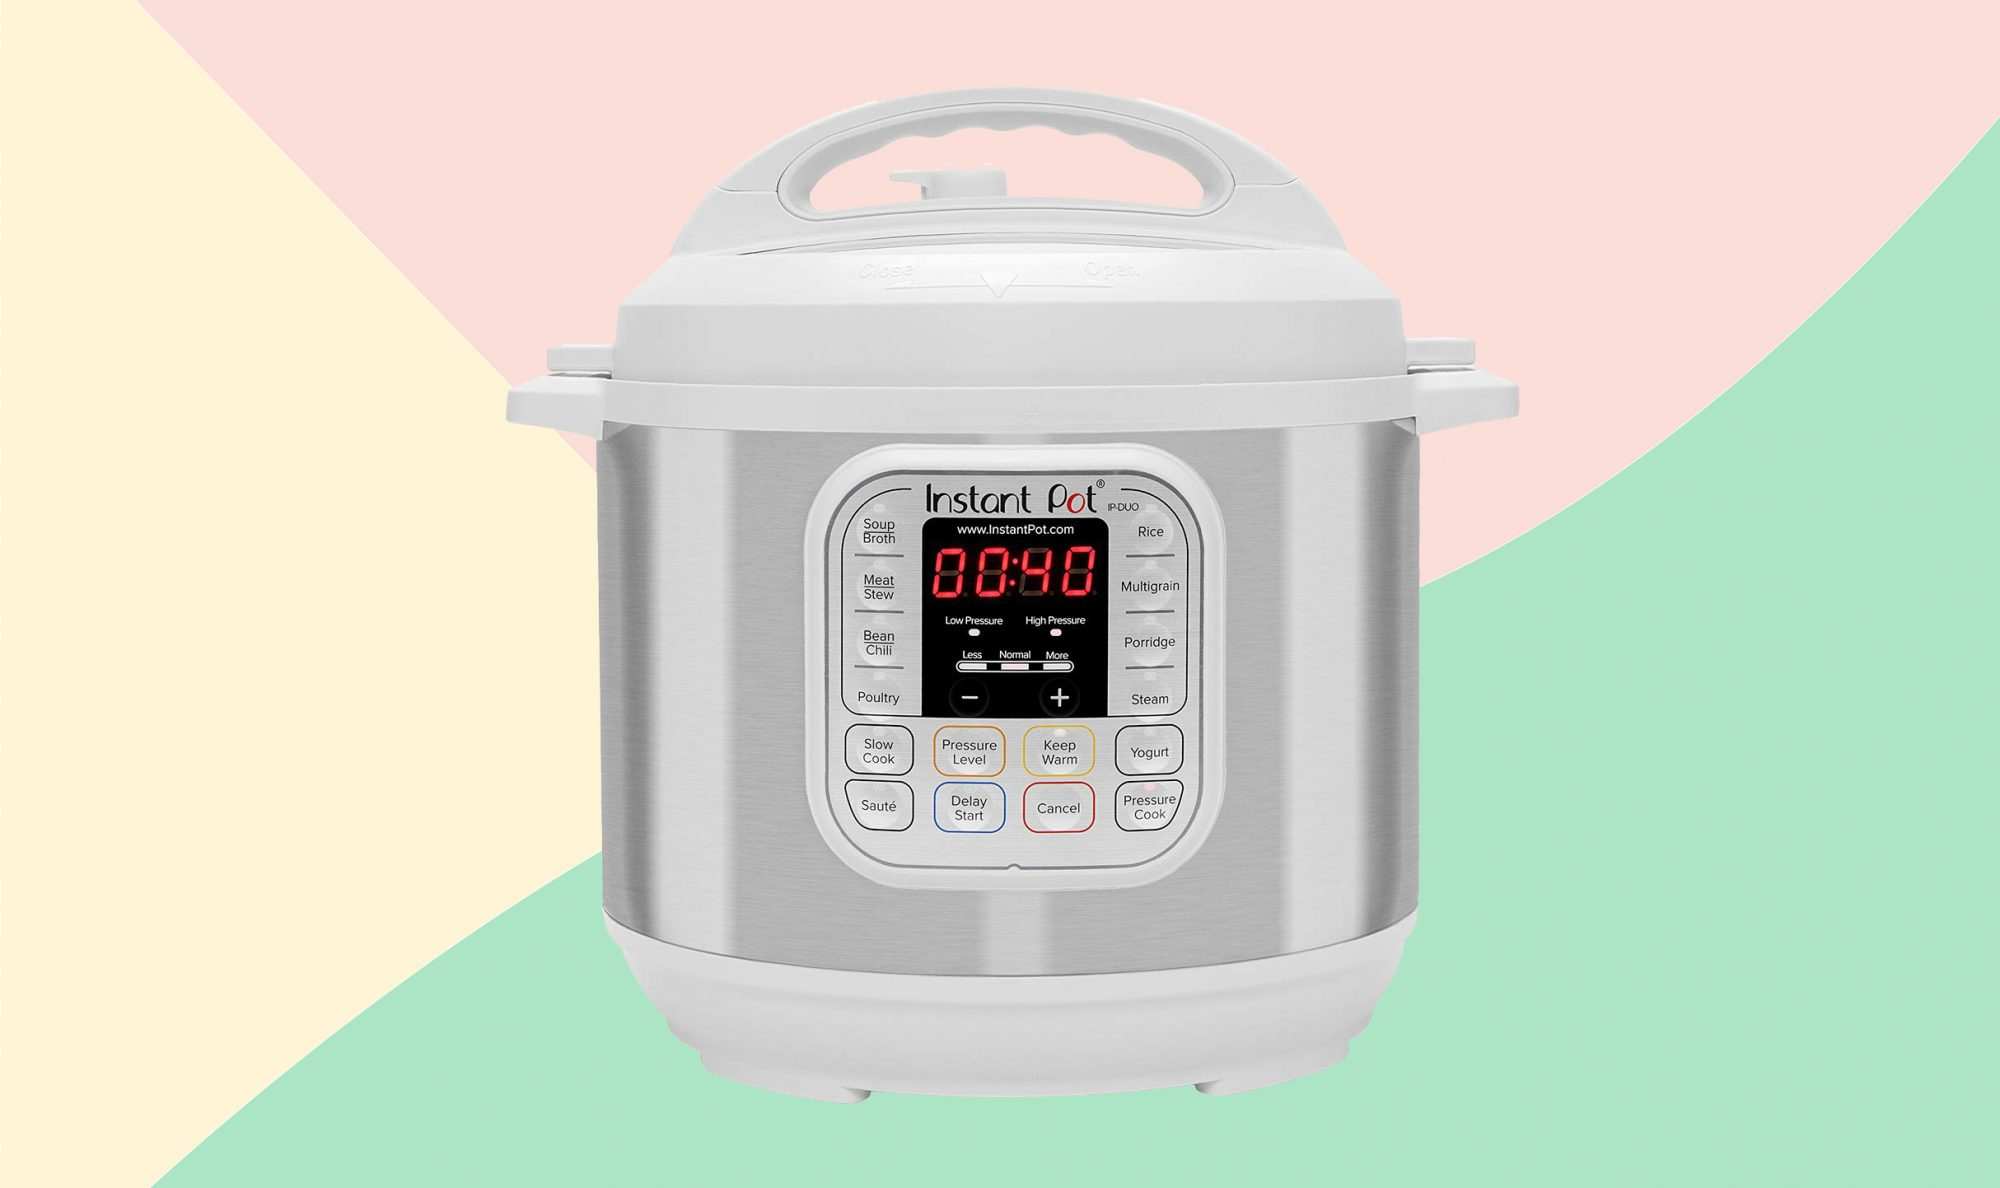 anti-inflammatory recipes you can make in Instant Pot: image of Instant Pot